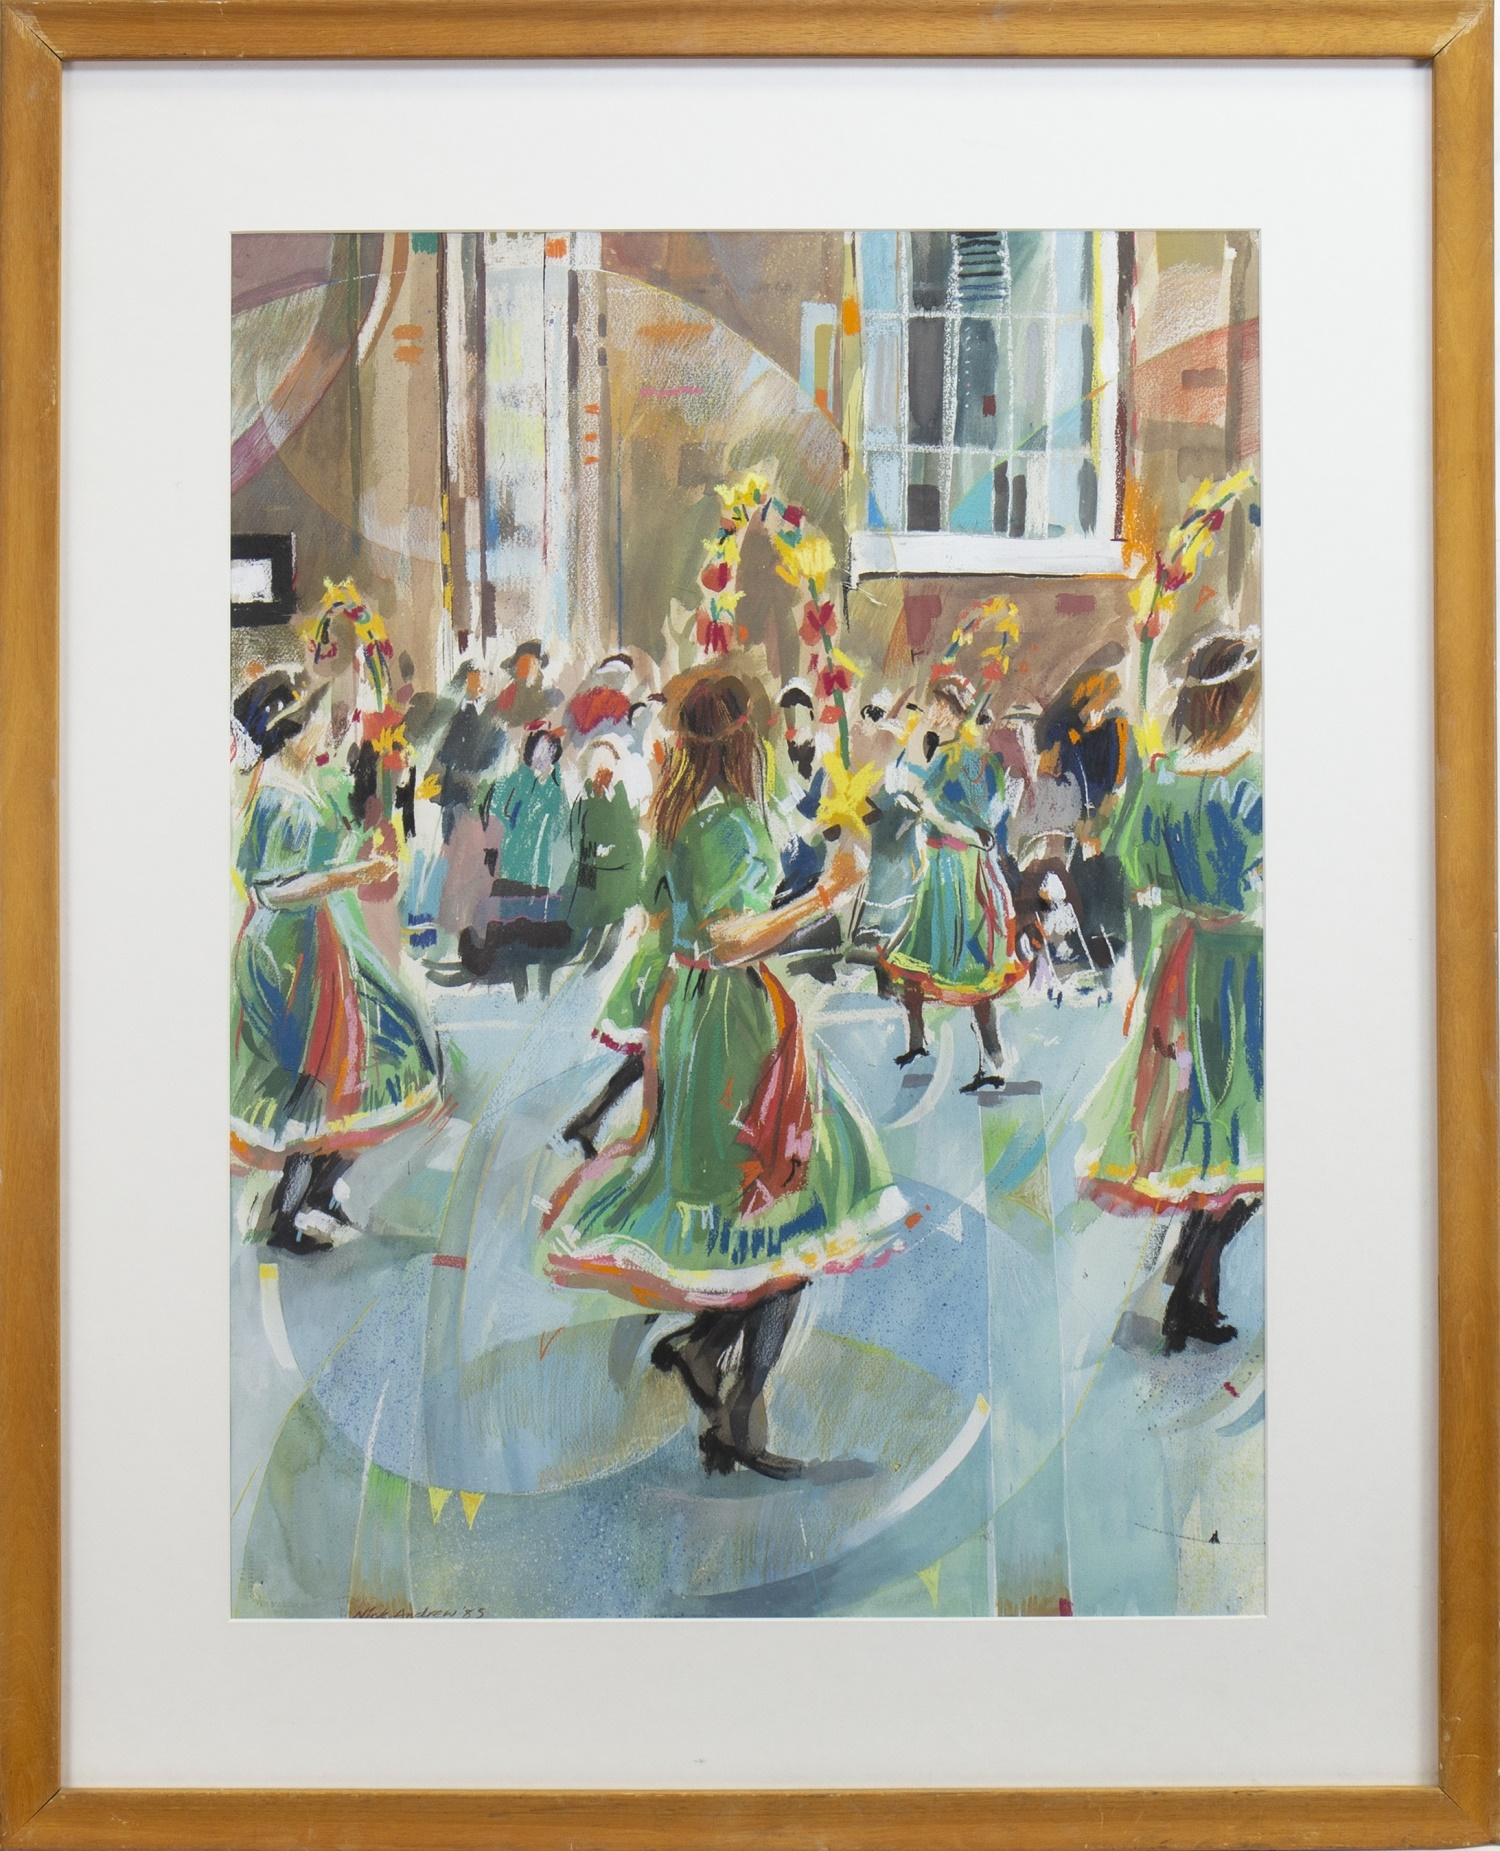 STREET DANCERS, A MIXED MEDIA BY NICK ANDREWS